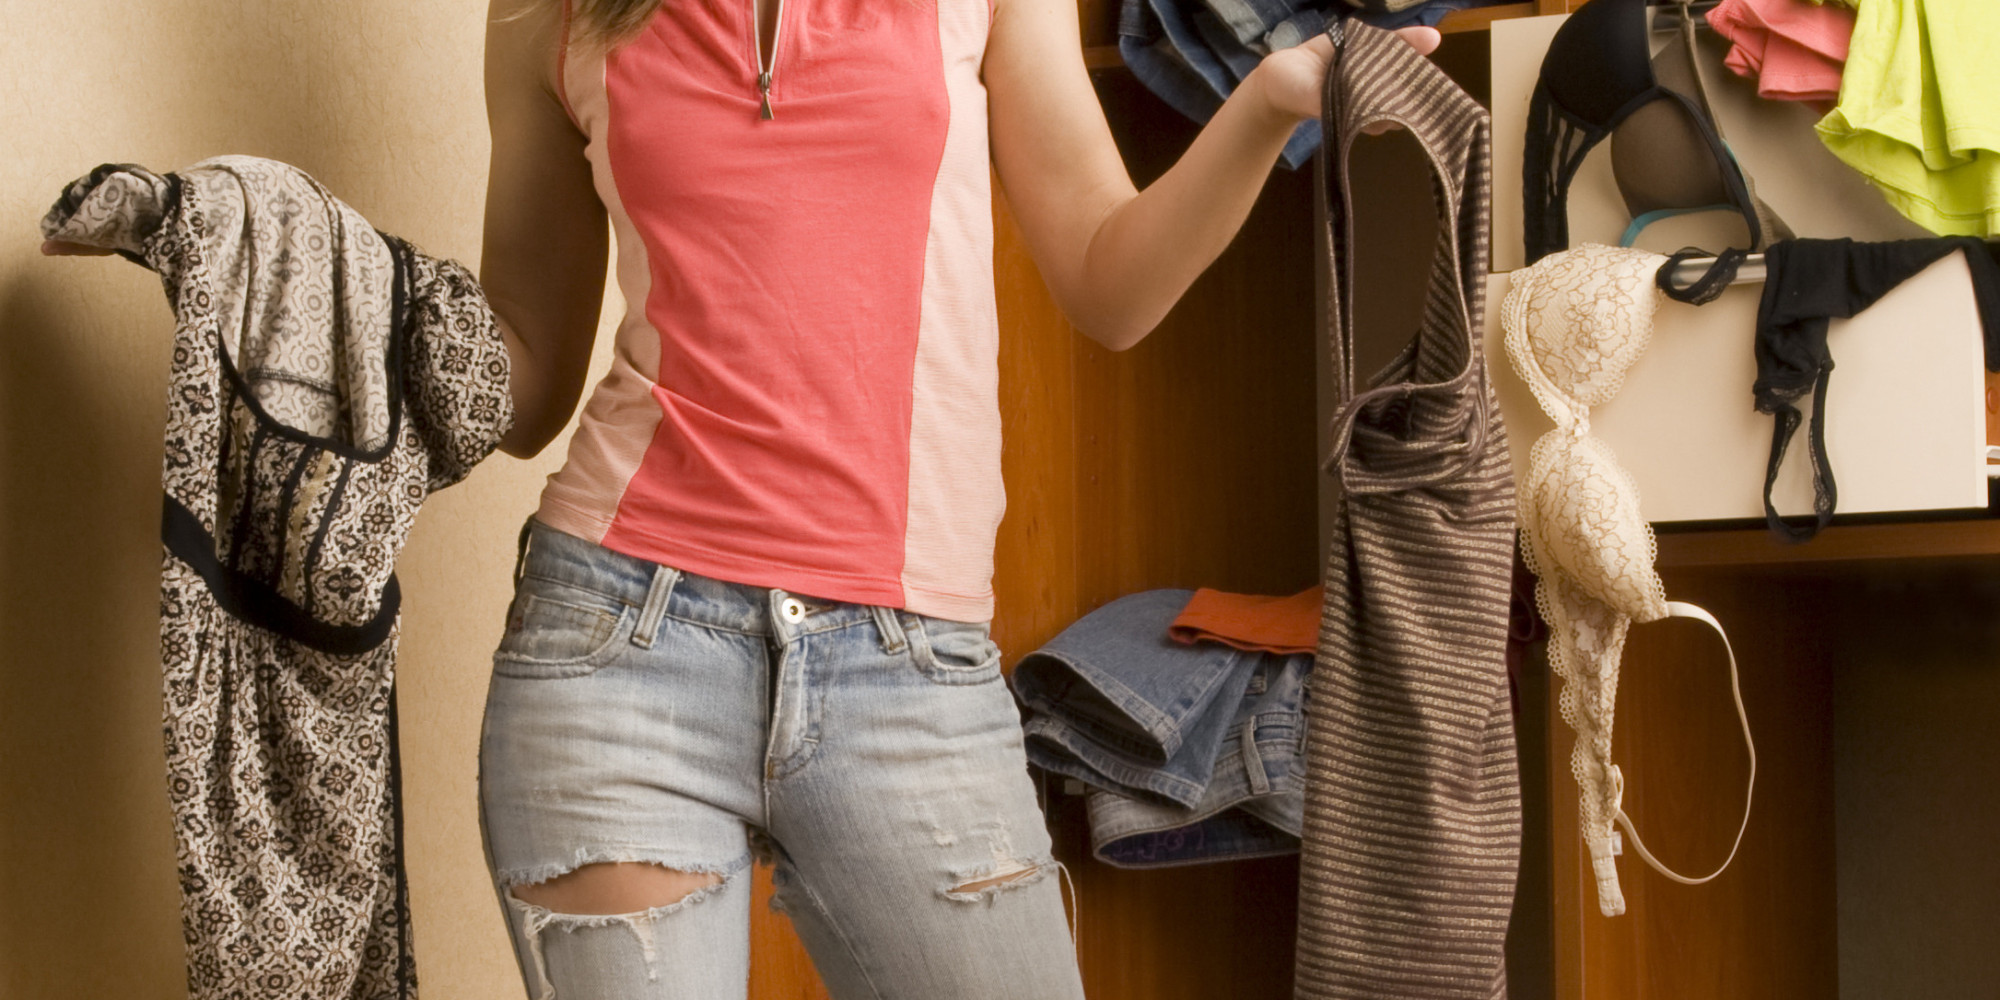 The Average Woman Owns Over $500 Worth Of Unworn Clothing, New Survey  Reports | HuffPost